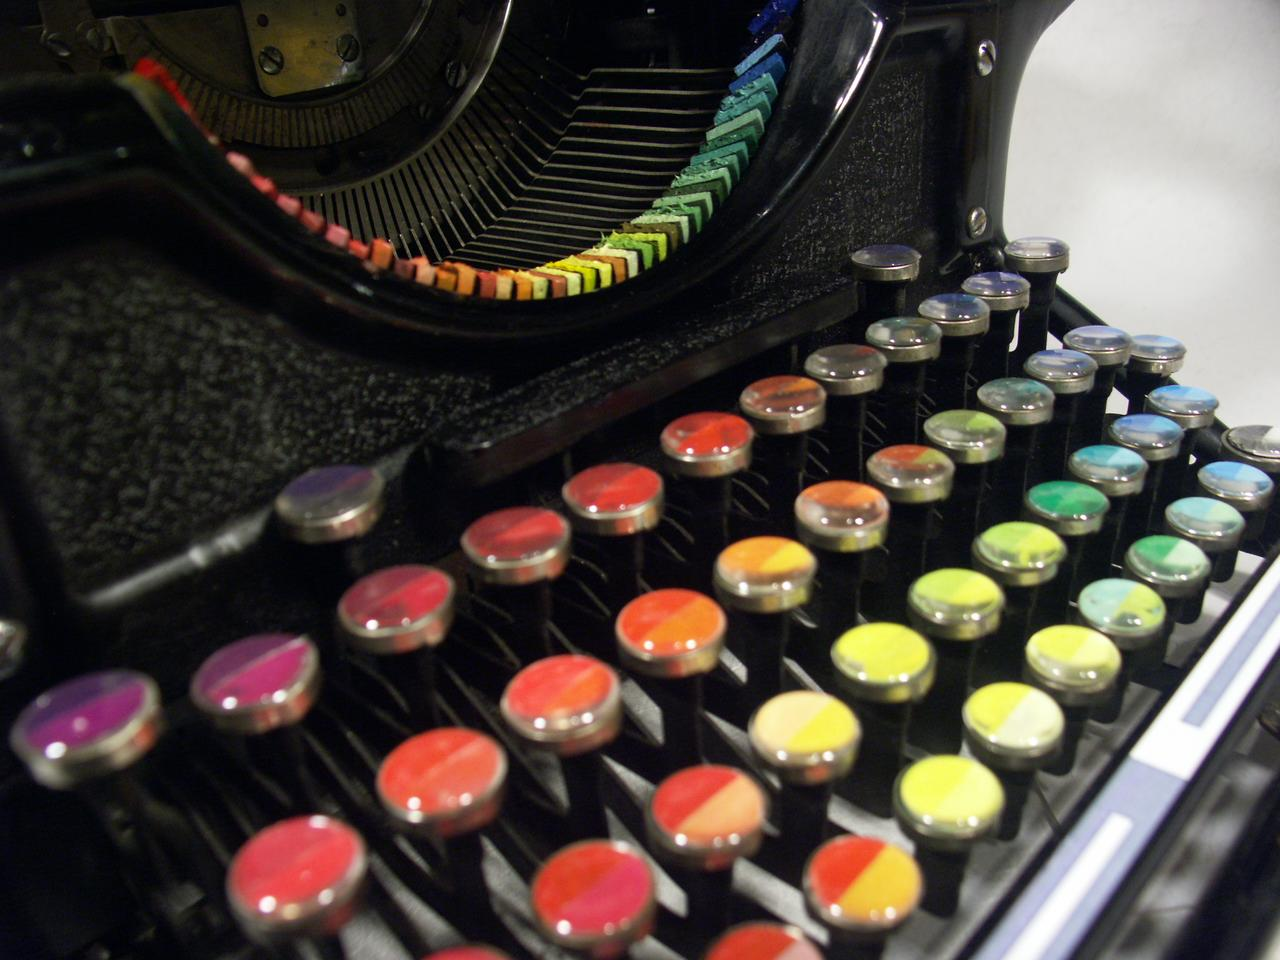 Each key on the typewriter's keyboard corresponds to a different hue